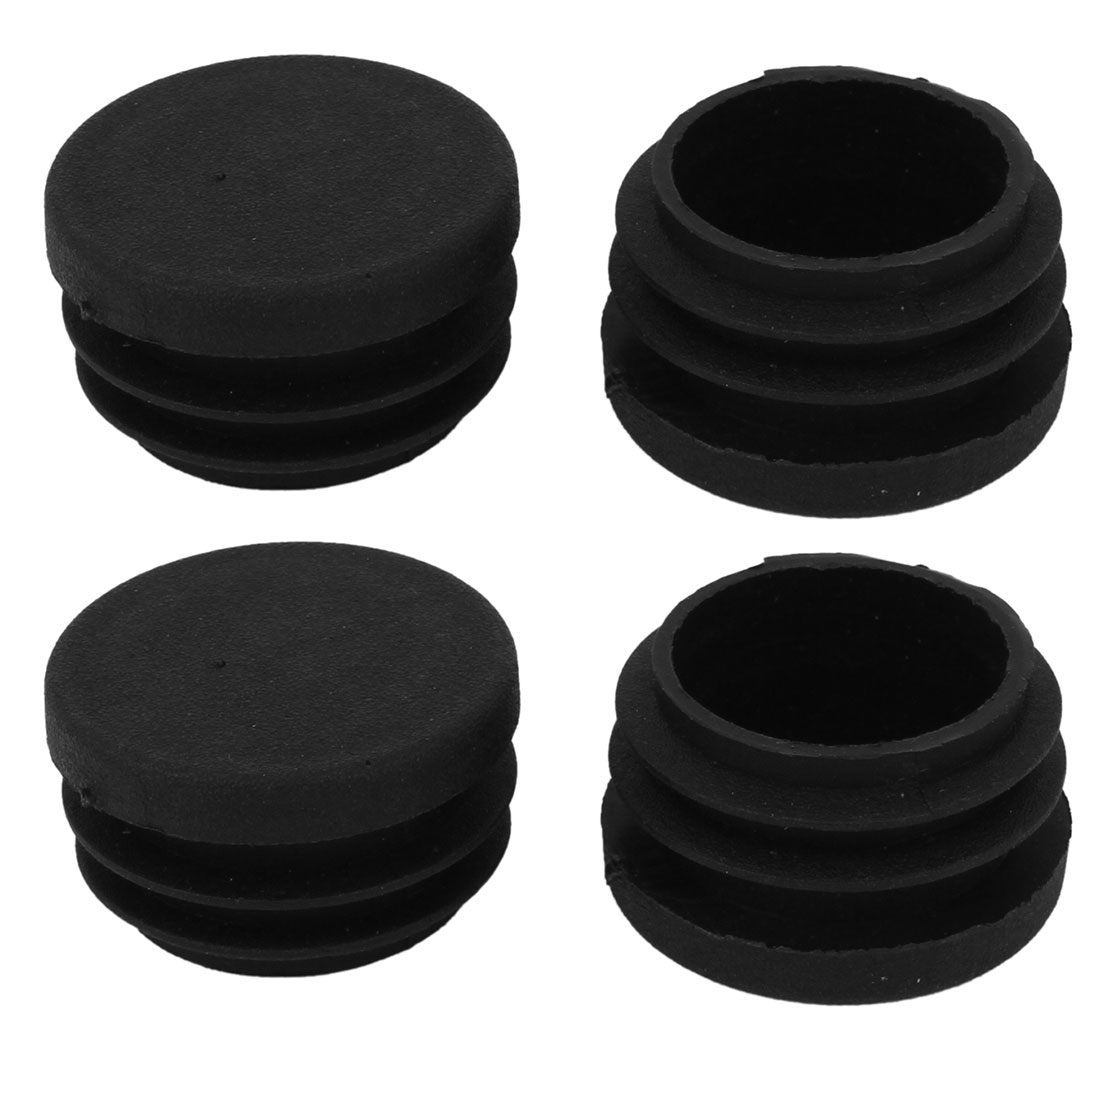 30mm x 21mm Black Plastic Blanking End Caps Round Tube Insert Cover Bung 4 Pcs